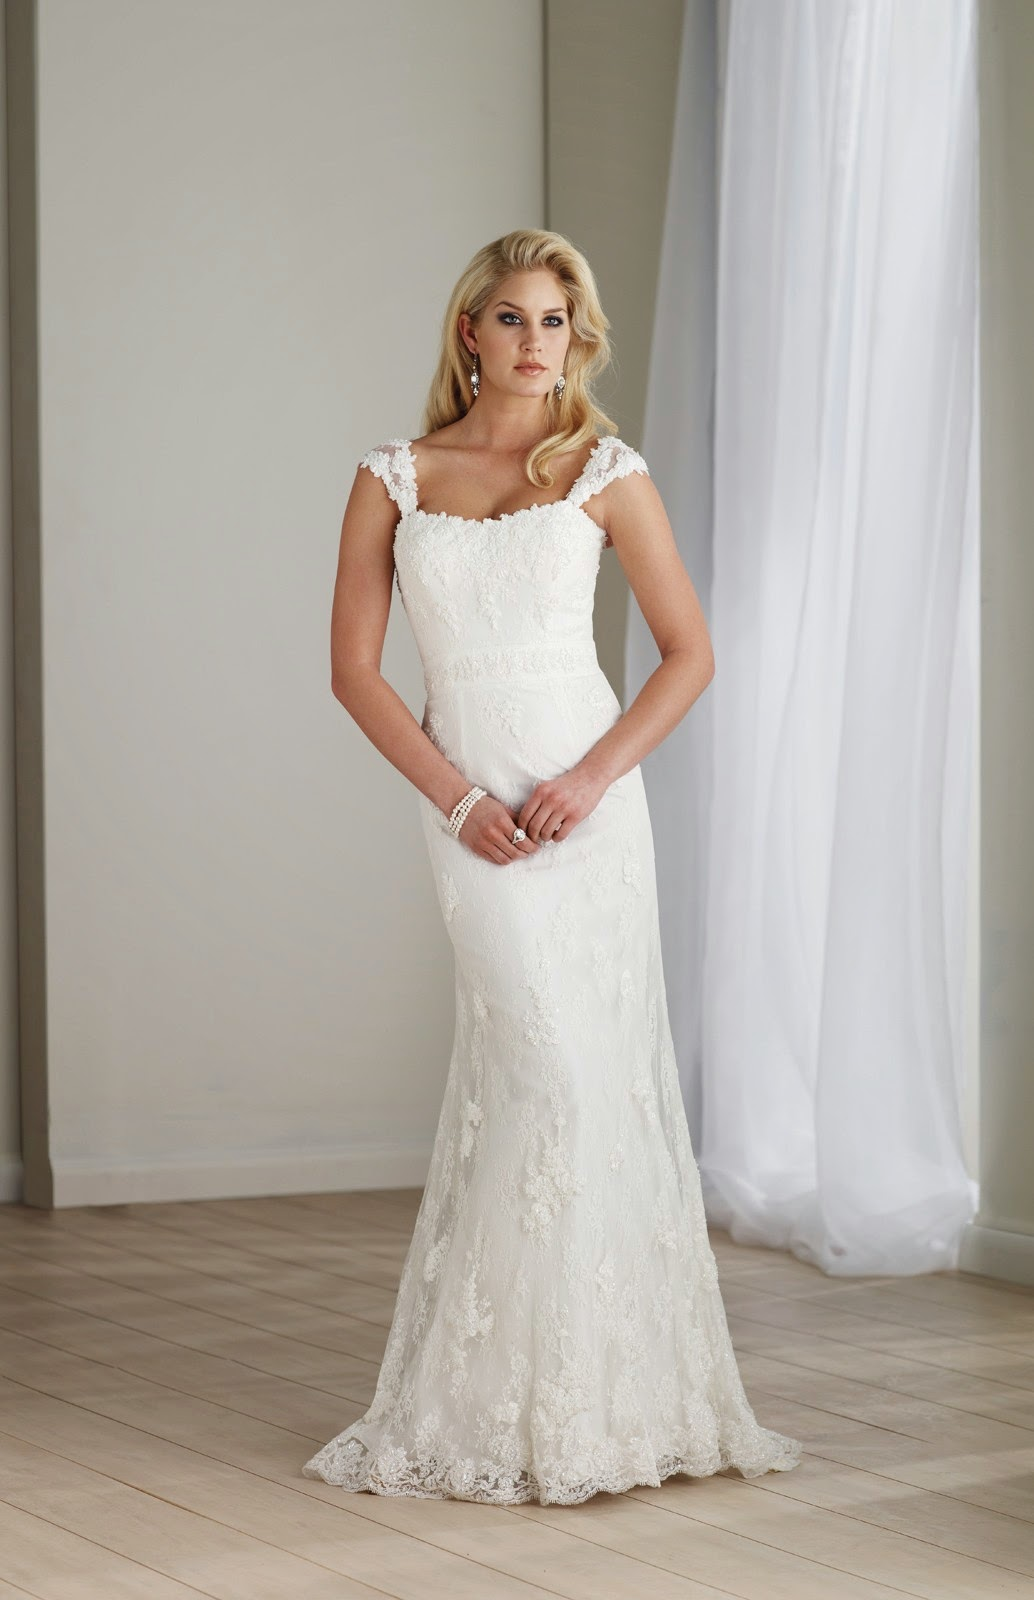 Wedding dresses for older brides 2nd marriage for Wedding dress 2nd marriage